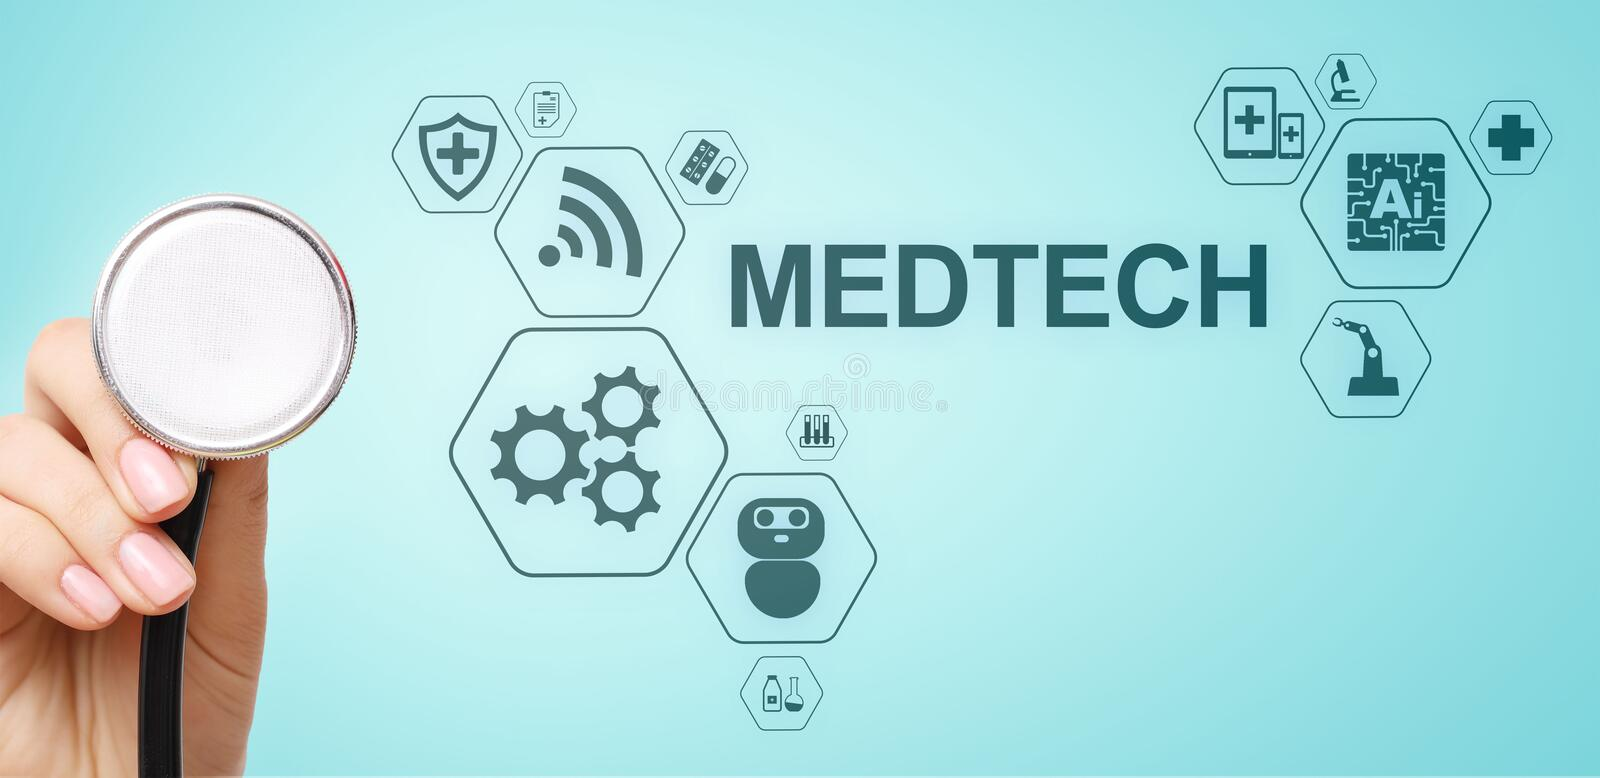 Medtech medical technology information integration internet big data concept on virtual screen. Doctor with stethoscope. royalty free stock image